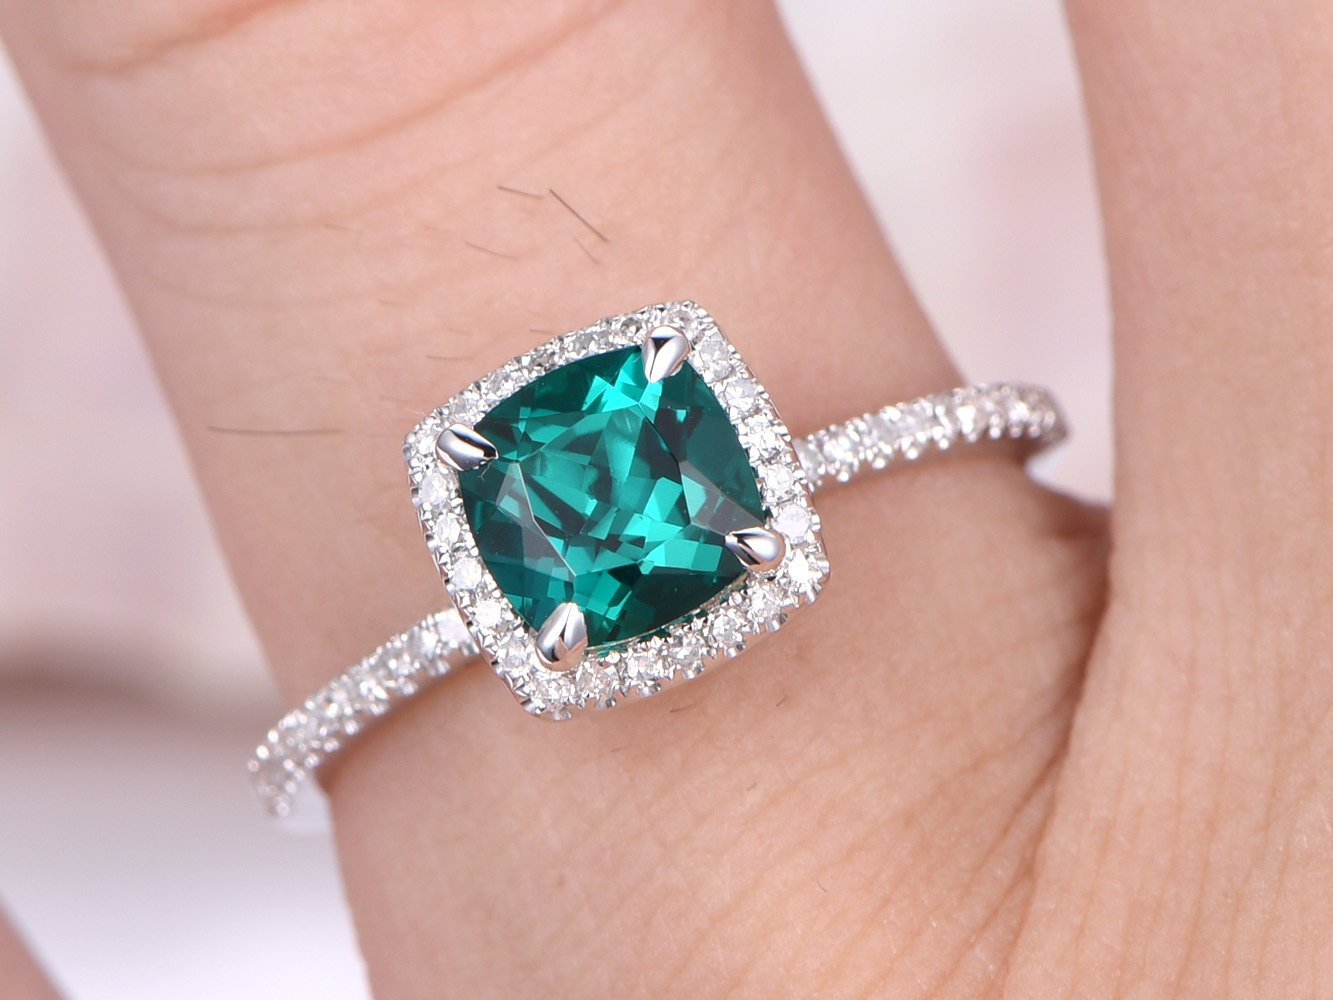 Amazon.com: Solid 14k White Gold 6x6mm Cushion Cut Green Emerald ...